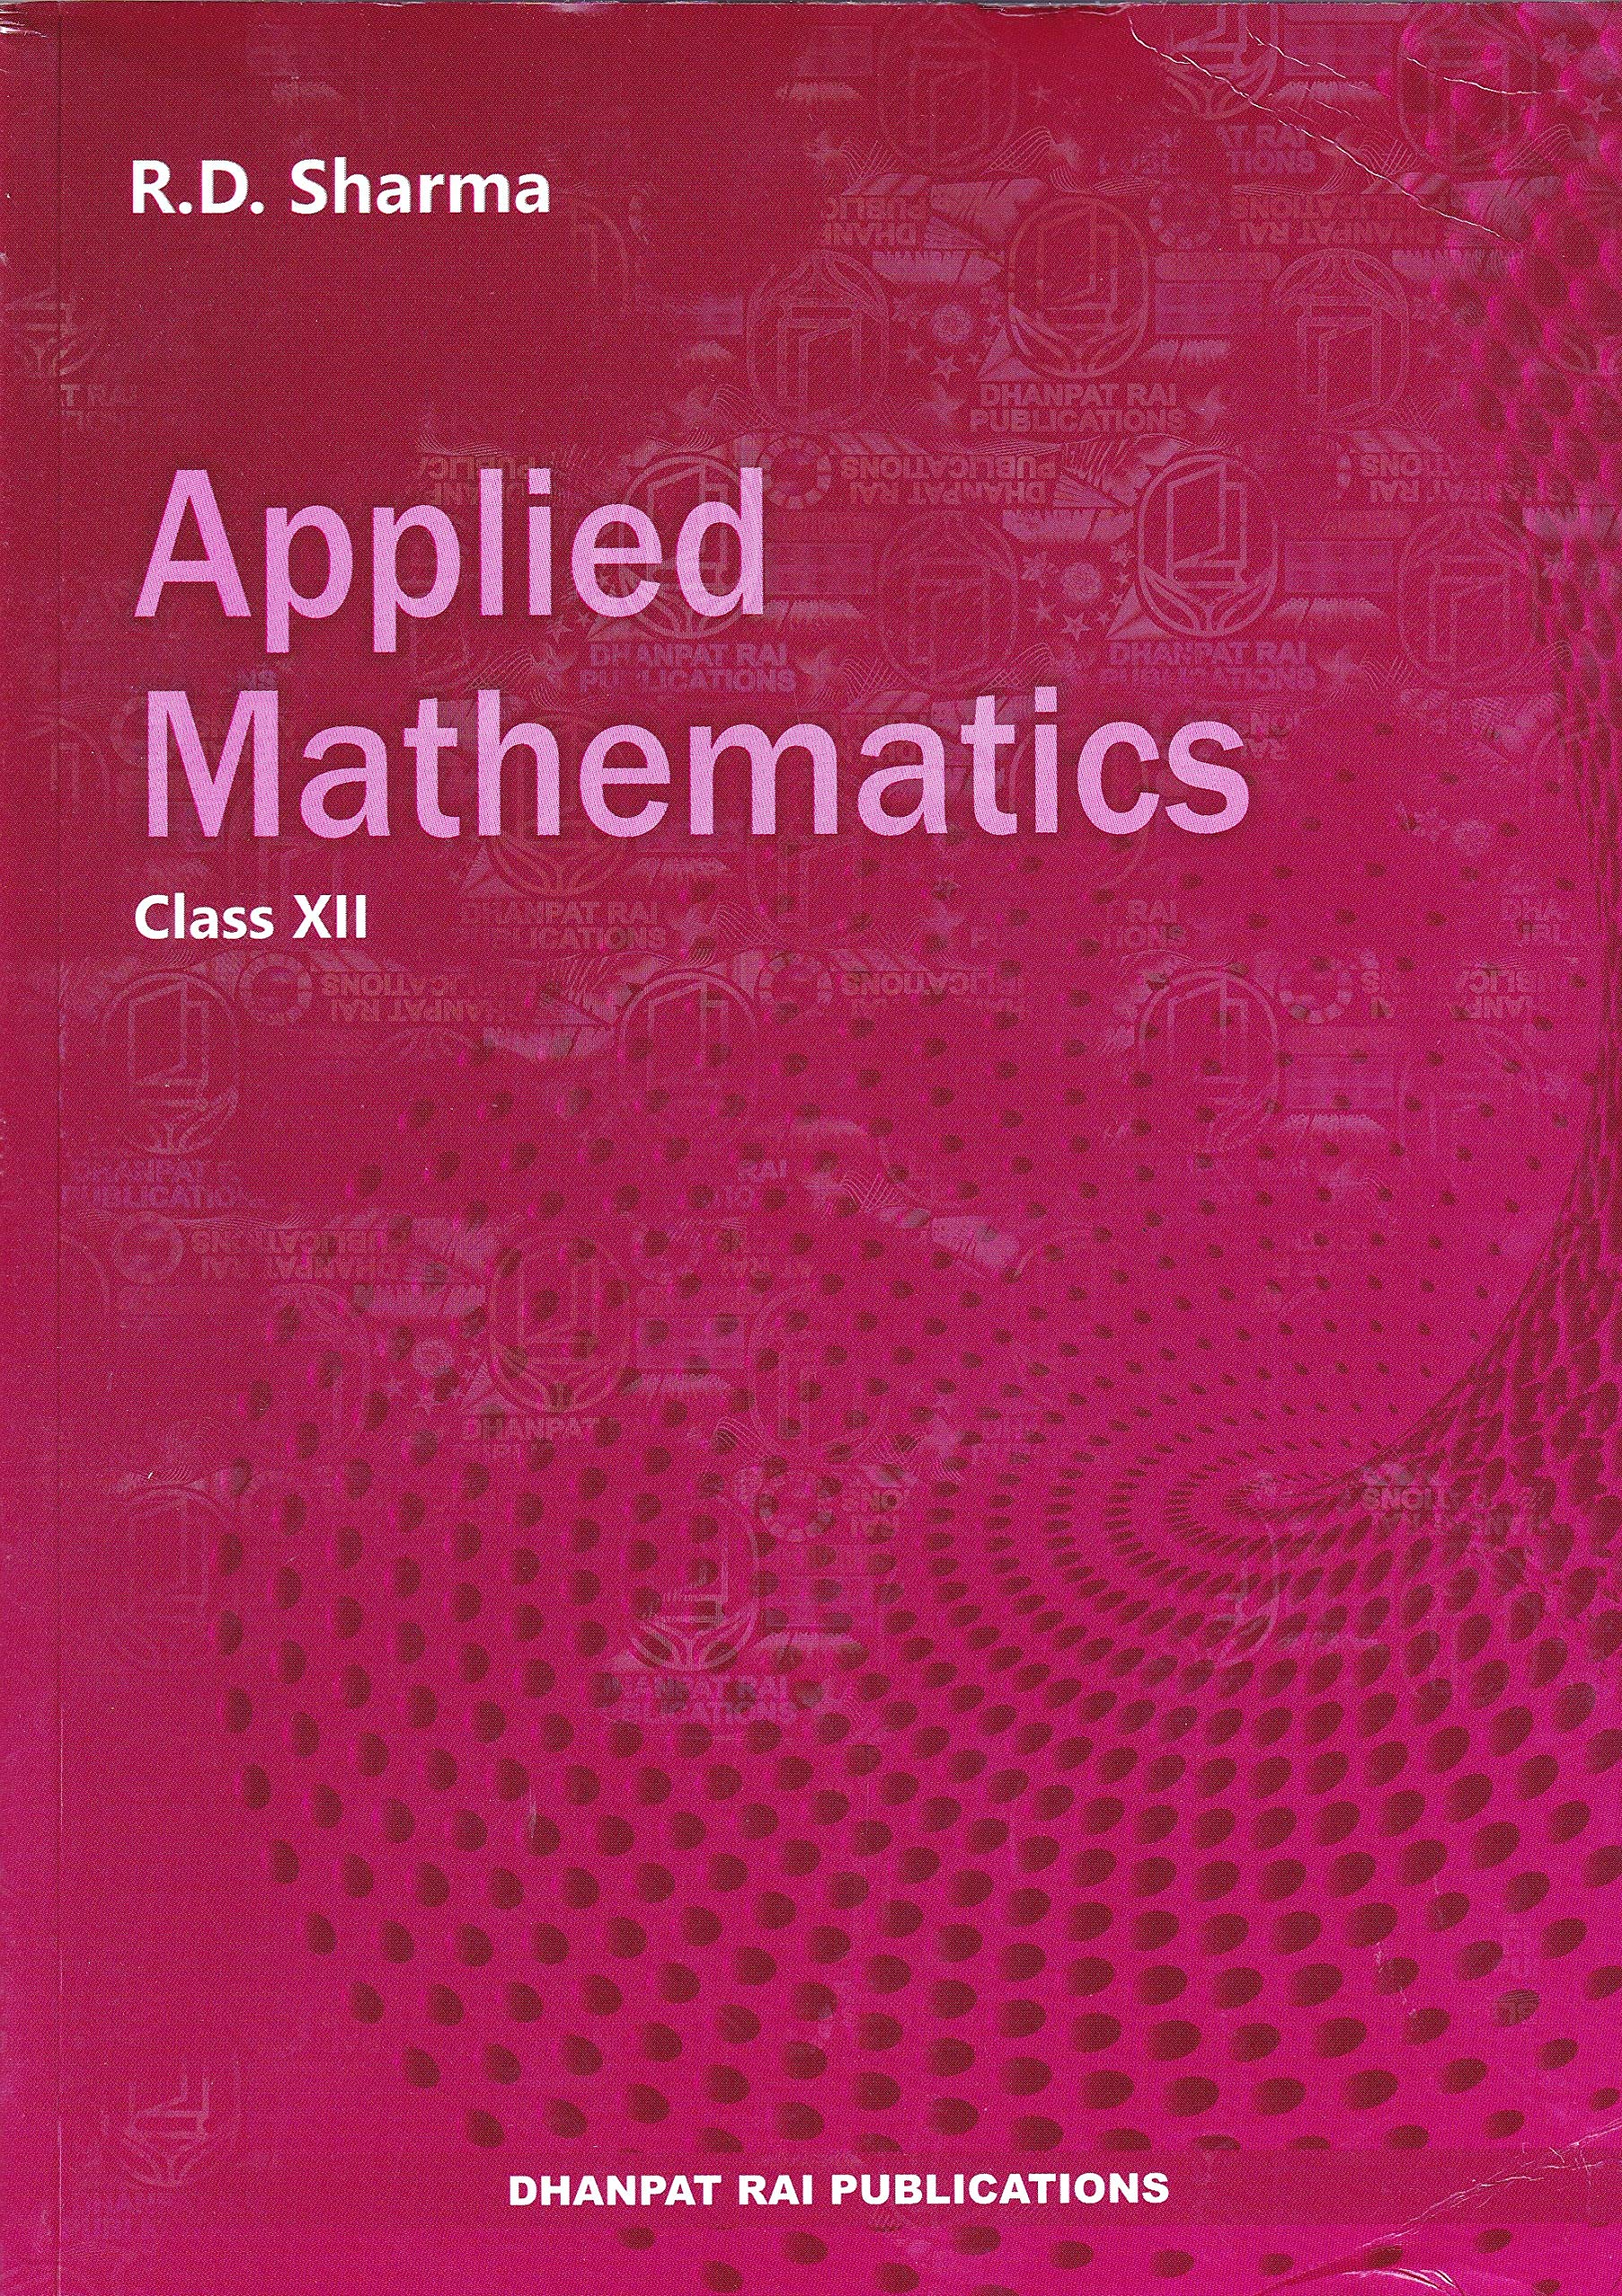 Applied Mathematics for Class 12 – Examination 2021-22 Paperback – 1 March 2021 by R.D. Sharma (Author)